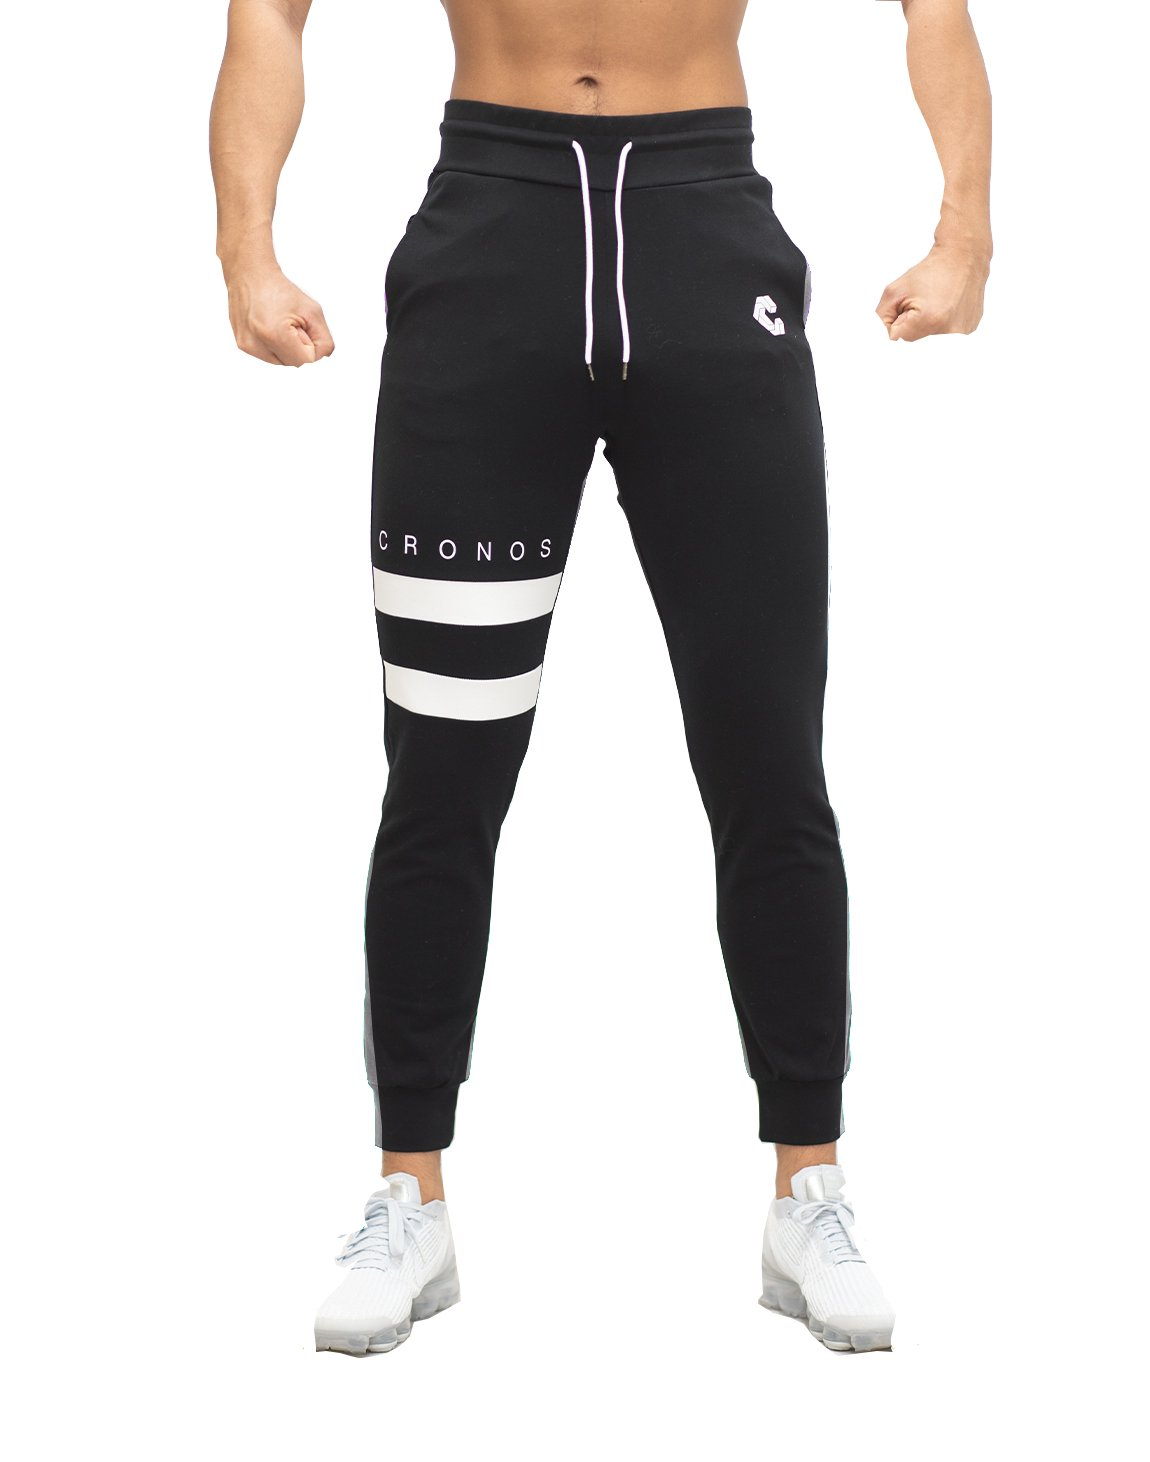 <img class='new_mark_img1' src='https://img.shop-pro.jp/img/new/icons1.gif' style='border:none;display:inline;margin:0px;padding:0px;width:auto;' />MODE TWO LINE JOGGER PANTS 【BLACK】Restock